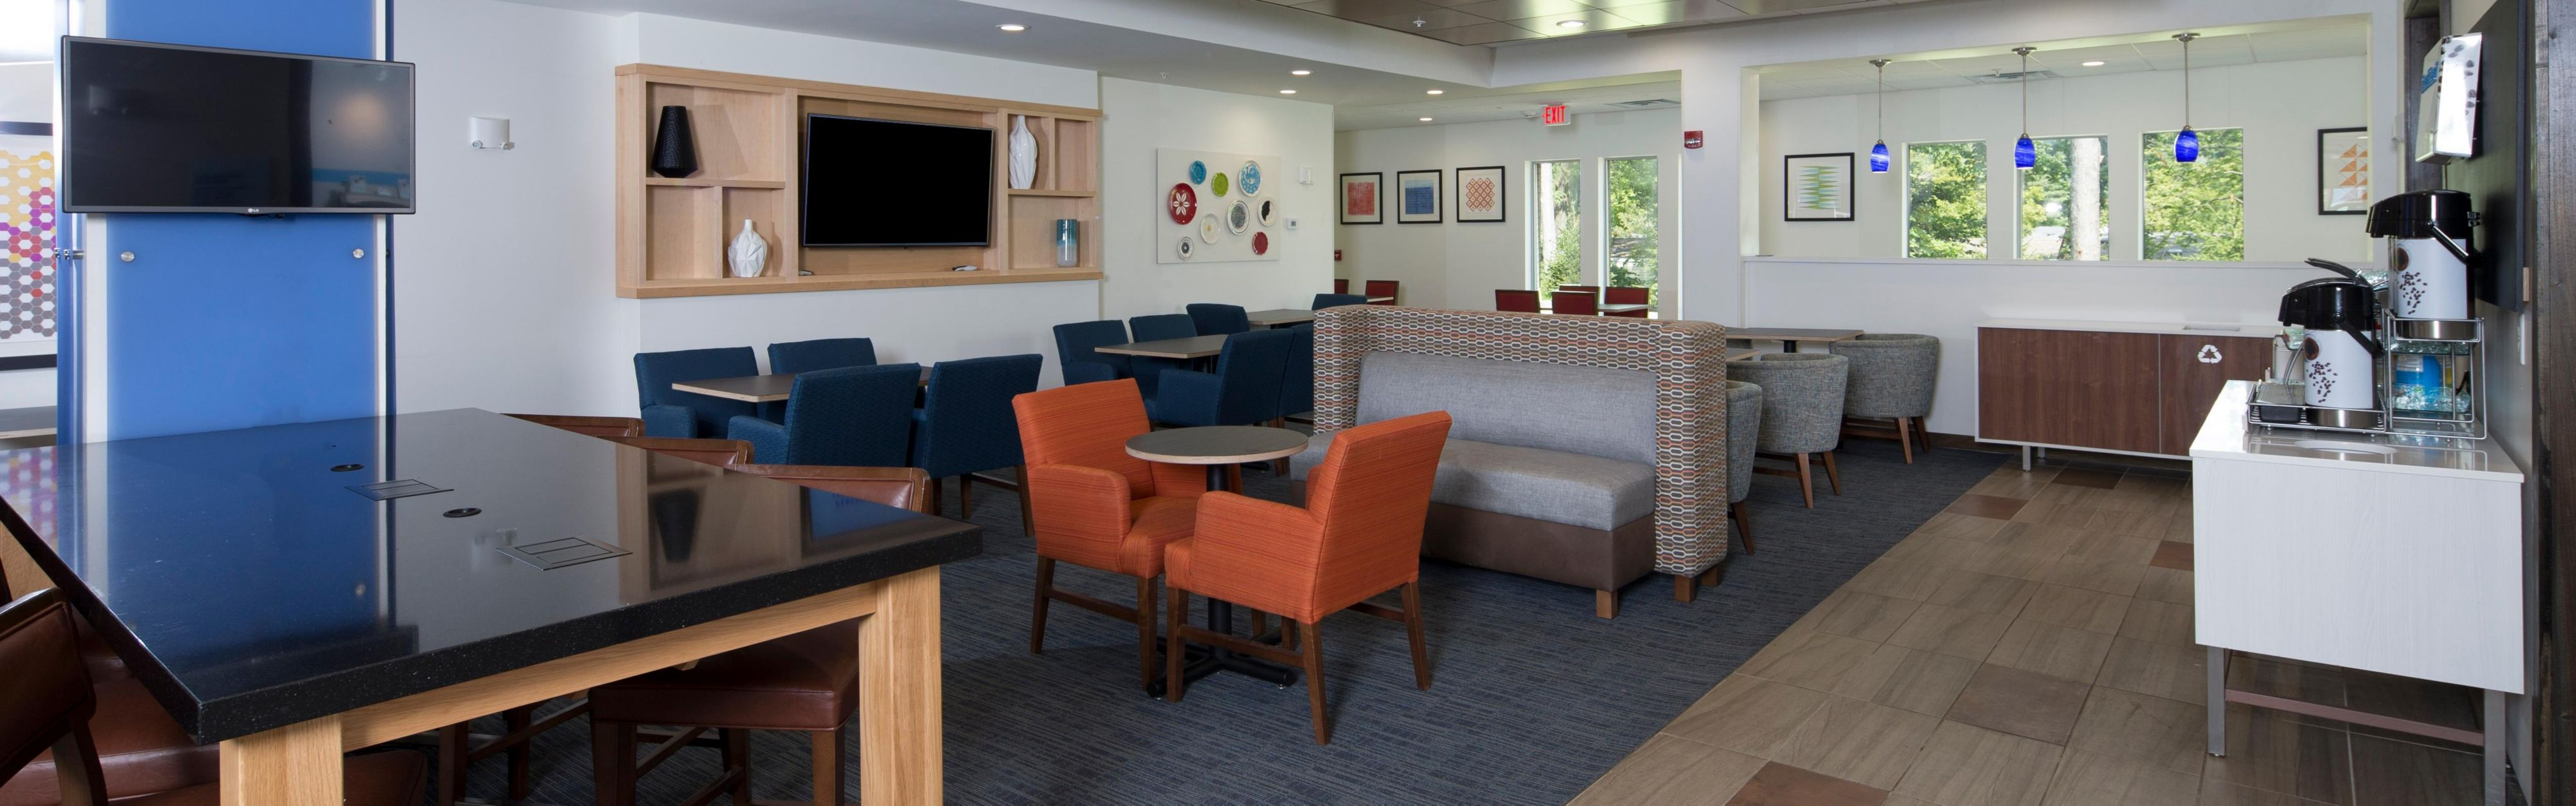 Holiday inn express suites la porte in laporte in 46350 for Laporte indiana phone directory